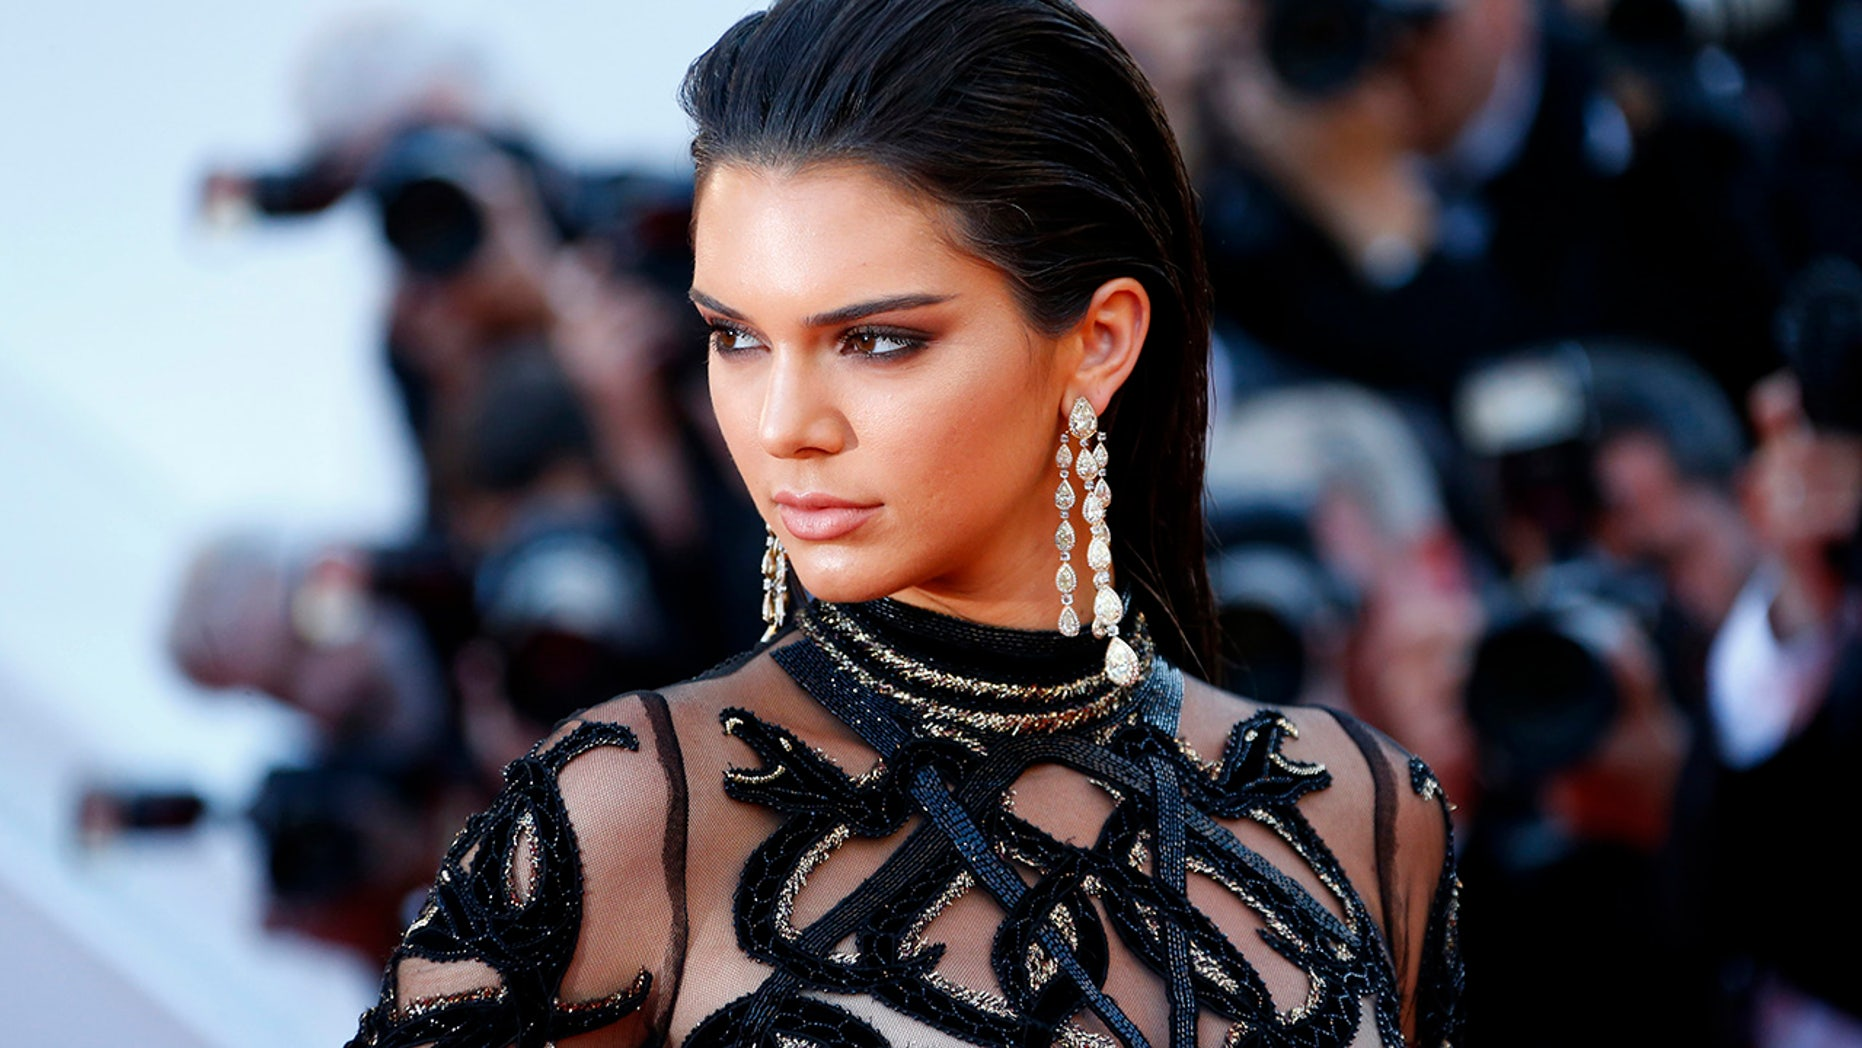 Kendall Jenner is being called out for reportedly not leaving a tip at a Brooklyn bar